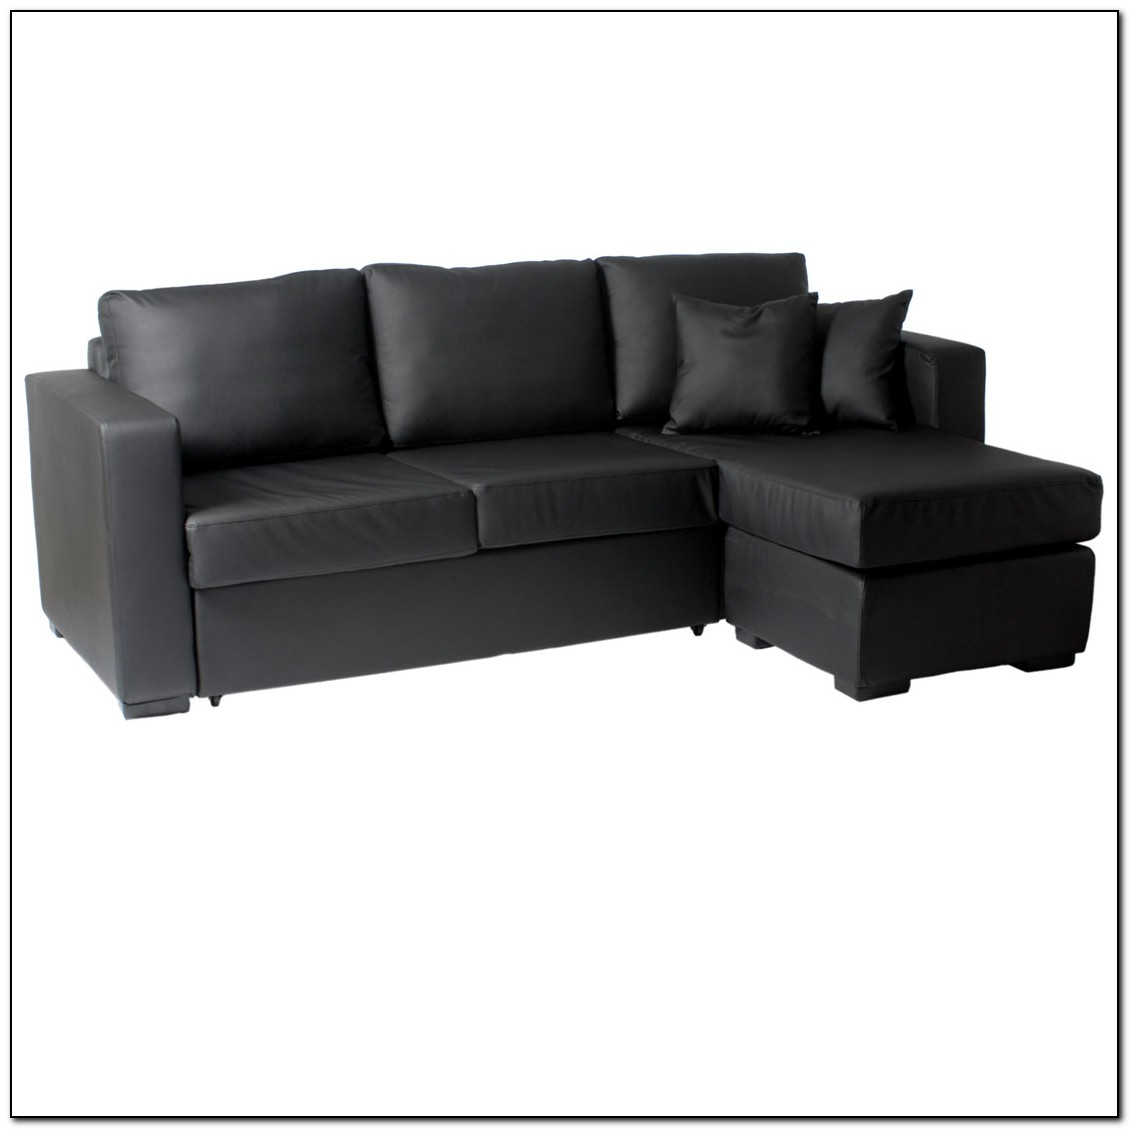 Apartment Size Sofa Bed